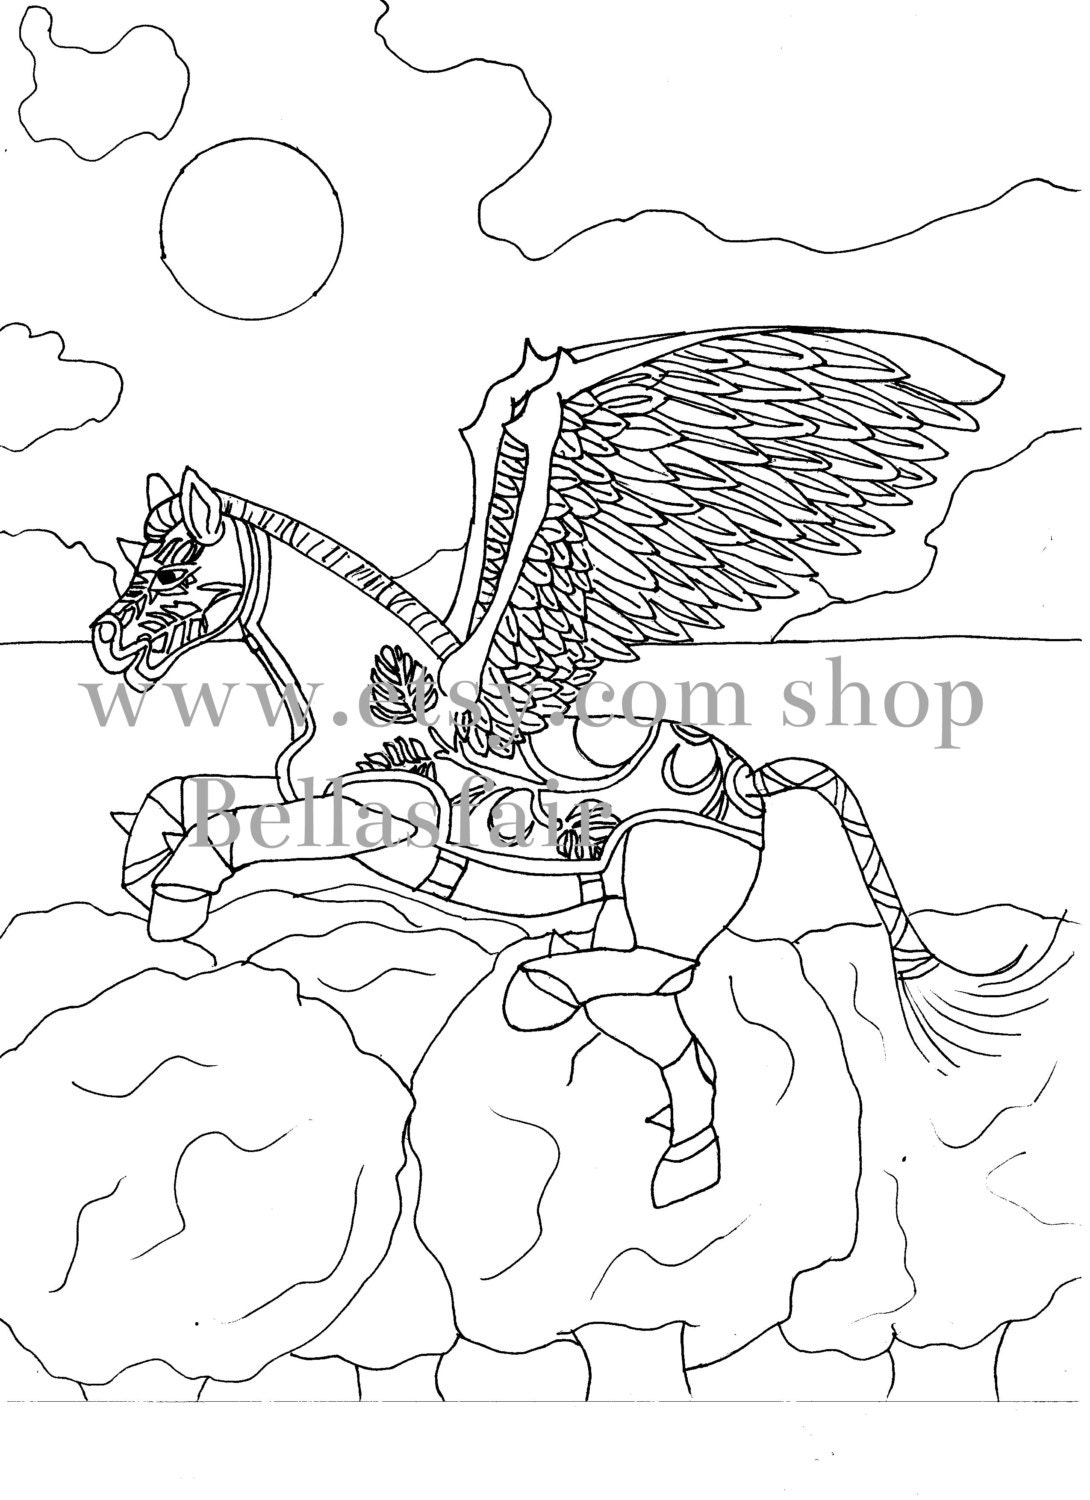 The sneaker coloring book pdf - Hand Drawn Mythical Horse Coloring Coloring Page Fantasy Horse Horse Mythical